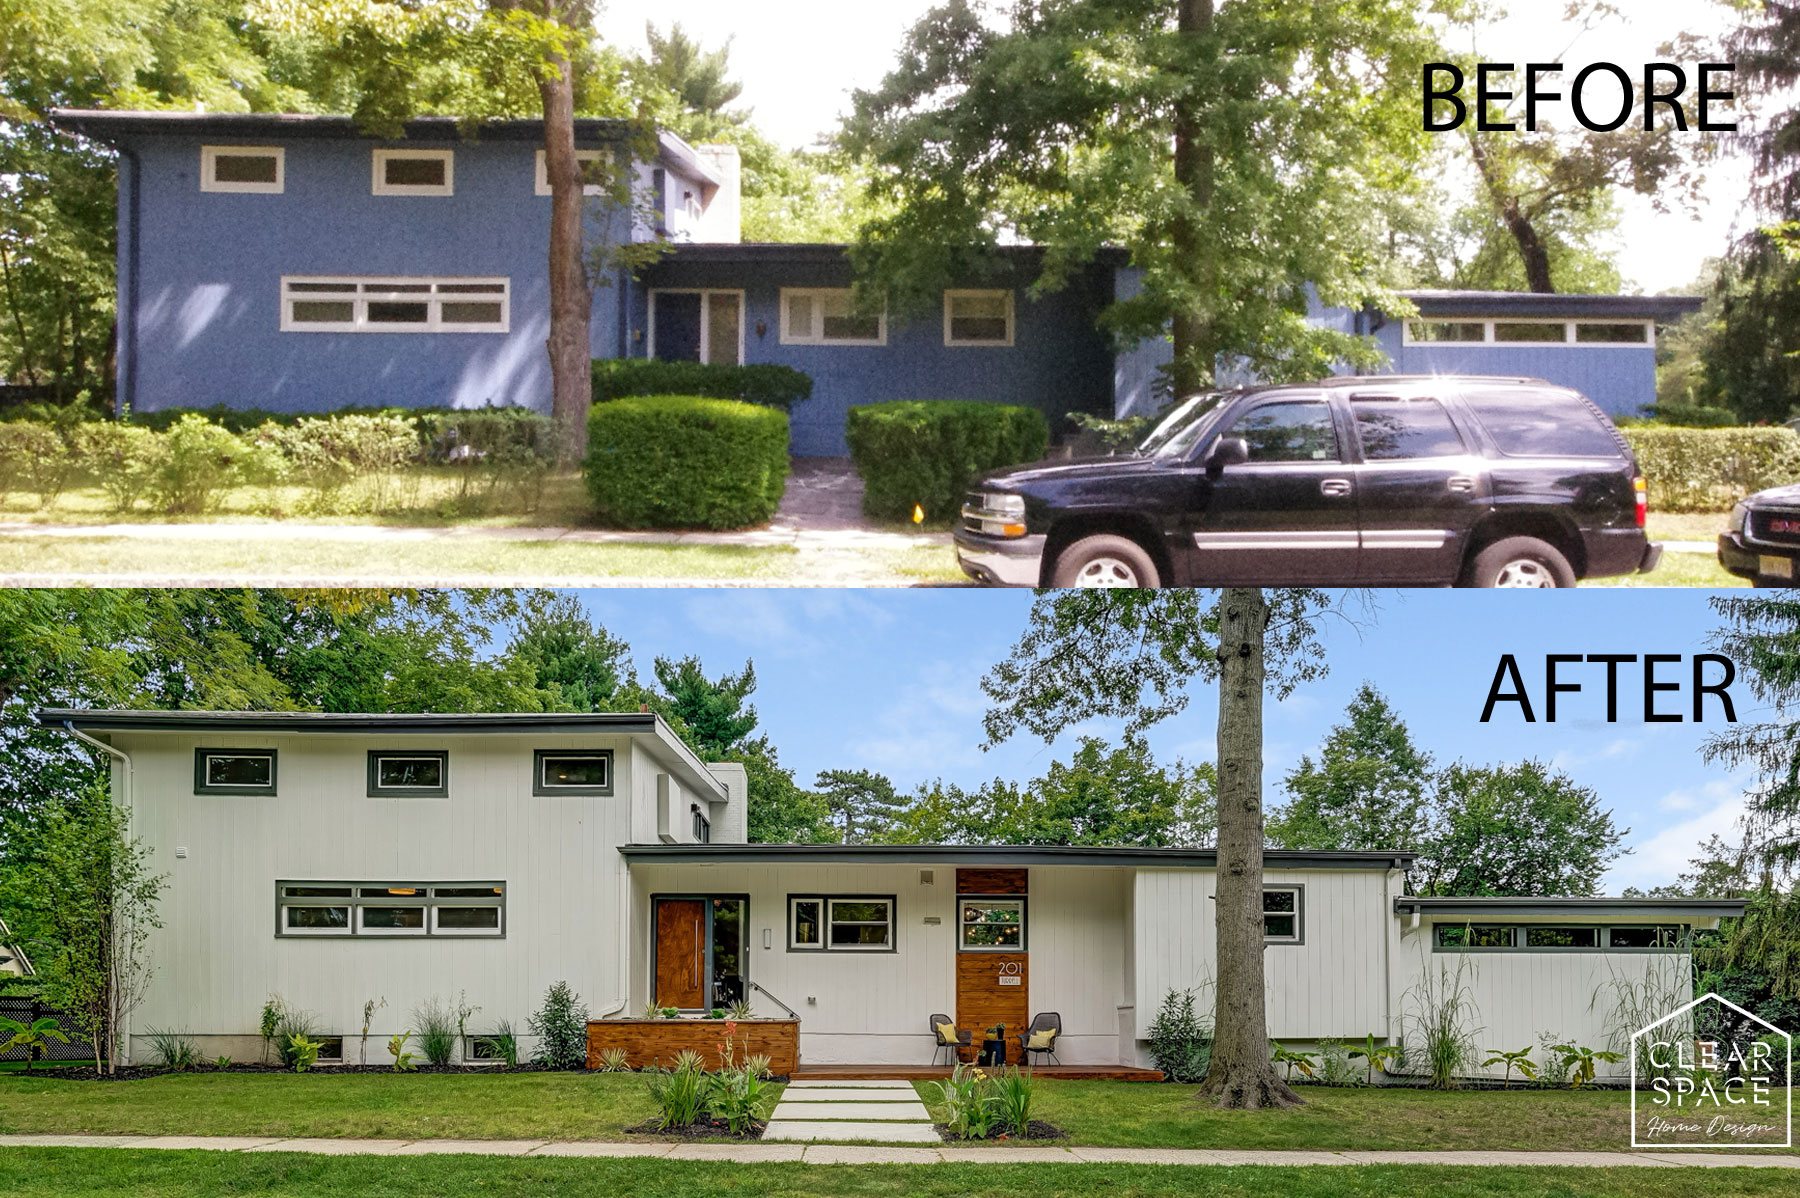 "Here's the before and after on the ""Big Blue Beast"" as we affectionately called it when we bought it.  The first thing to go was the bold blue color for a more neutral white/charcoal gray color scheme.  We spent a lot of time, money and energy to bring a California cool to this suburban NJ gem."